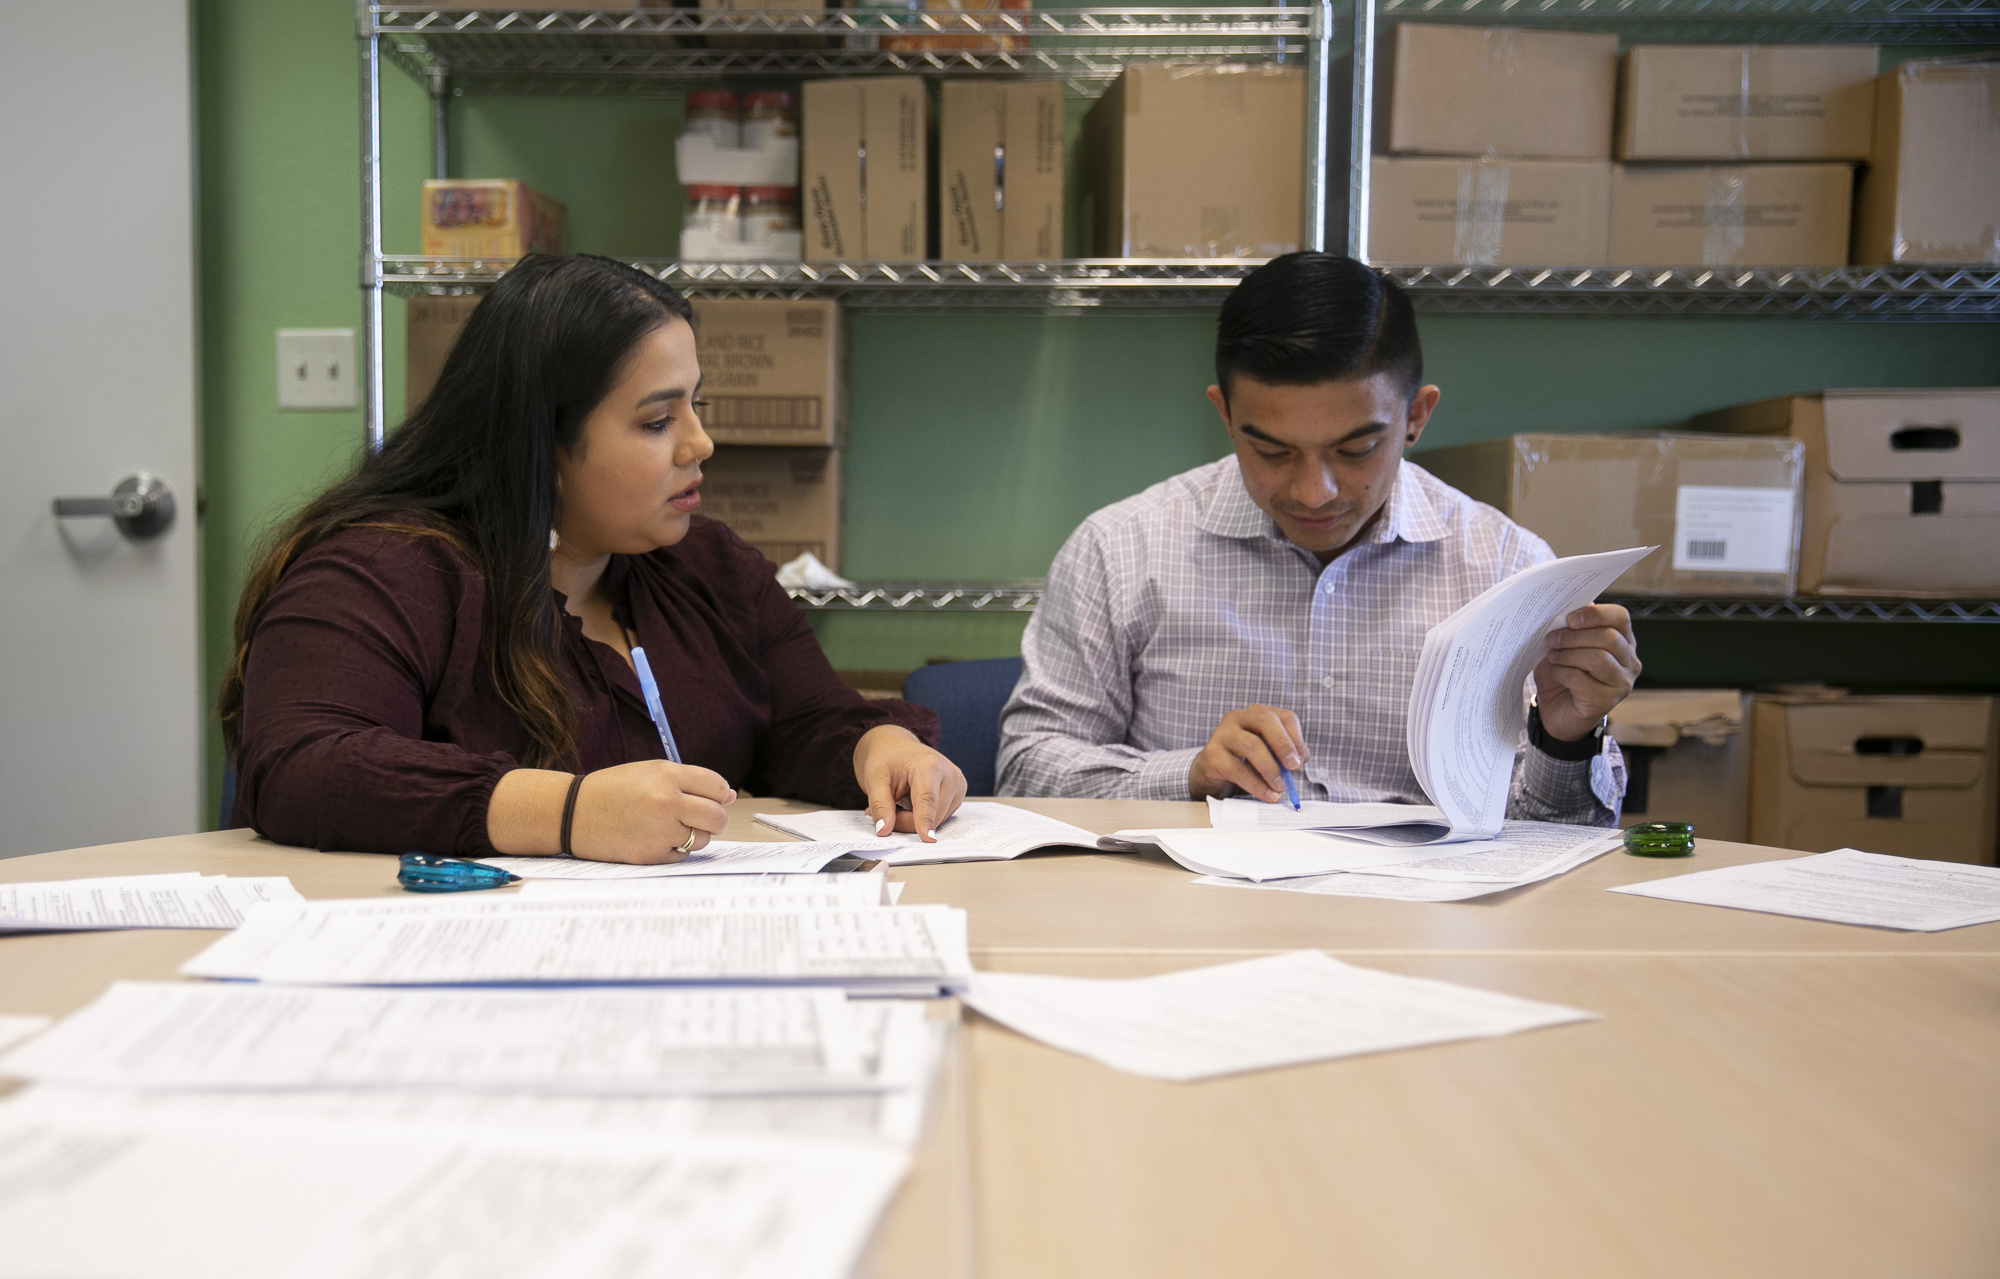 Volunteer Daniella Martinez, left, and Shane Sagisi, a law clerk with San Mateo County Legal Aid, fill out unlawful detainer forms during a housing clinic at the Colma Civic Center. Photo by Anne Wernikoff for CalMatters